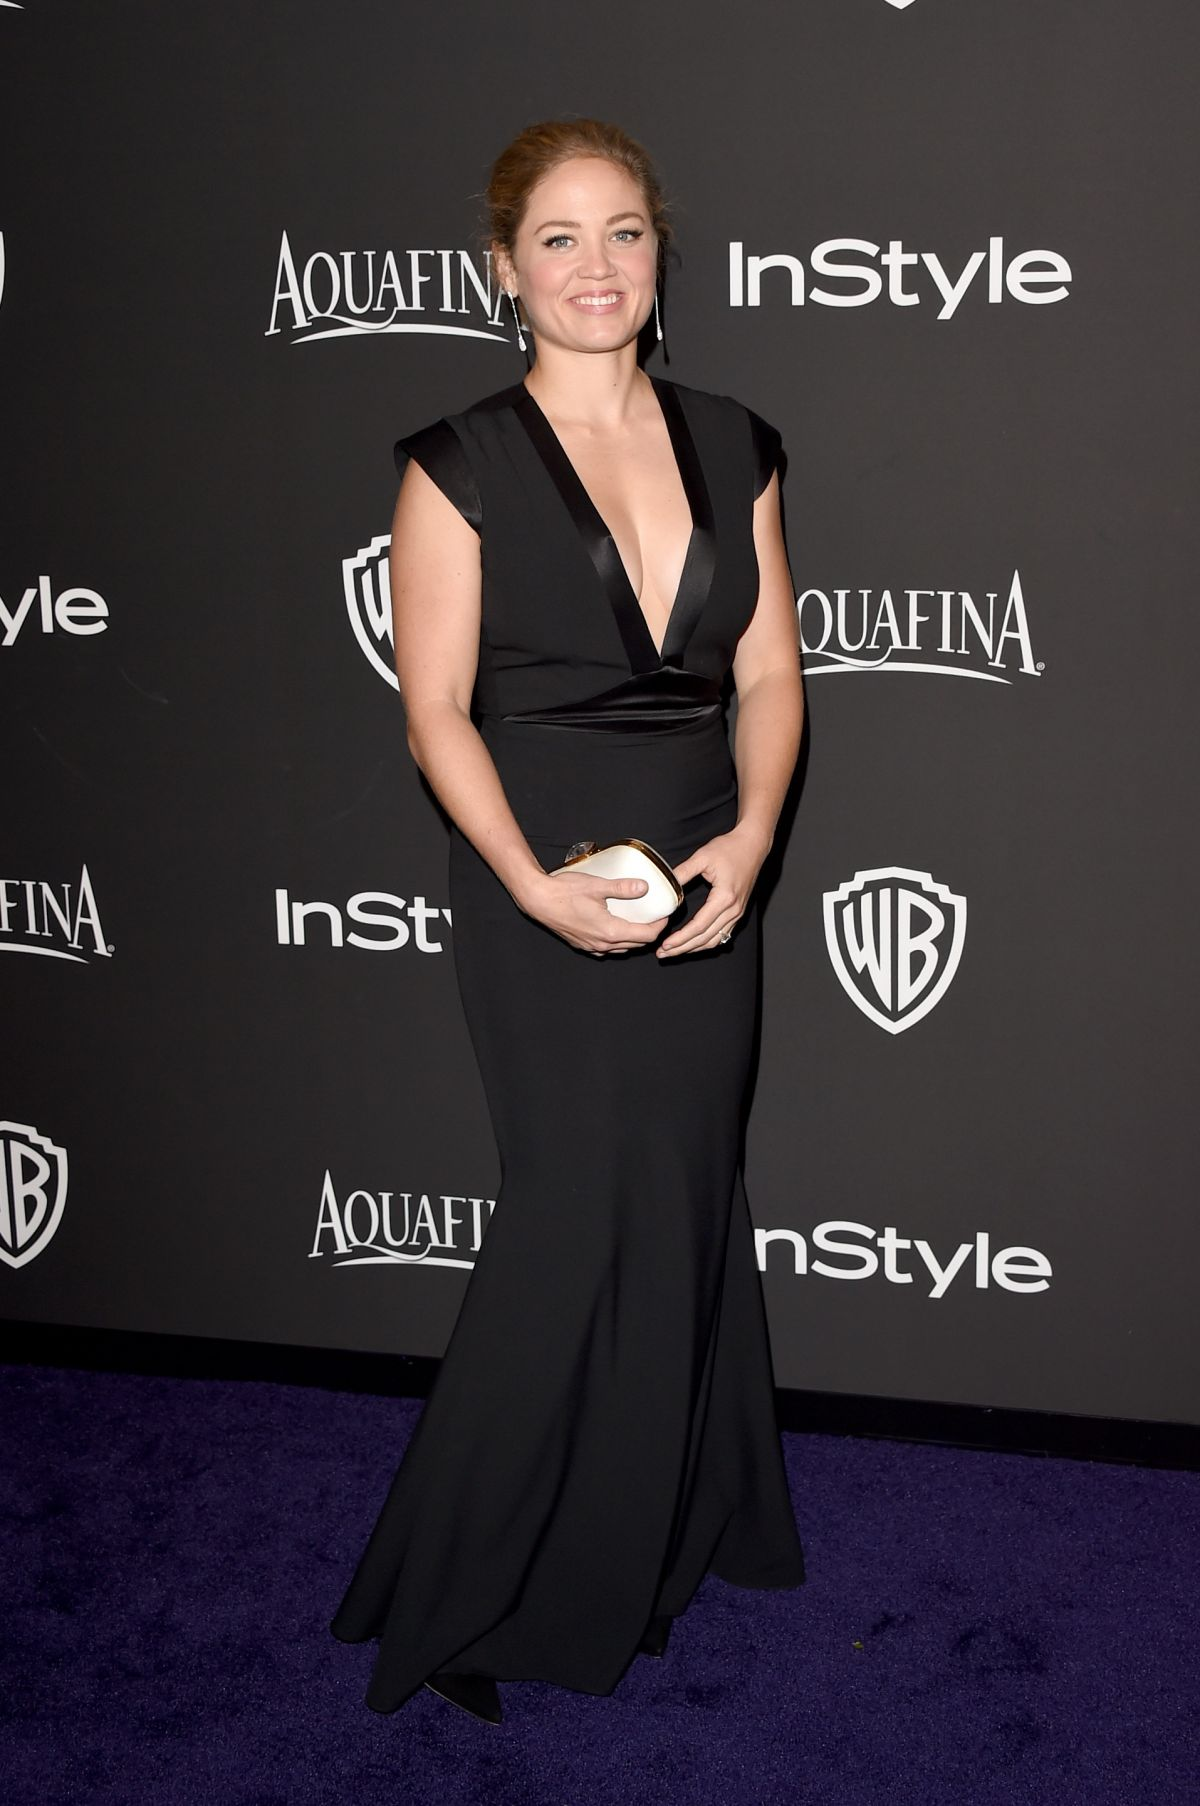 ERIKA CHRISTENSEN at Instyle and Warner Bros Golden Globes Party in Beverly Hills